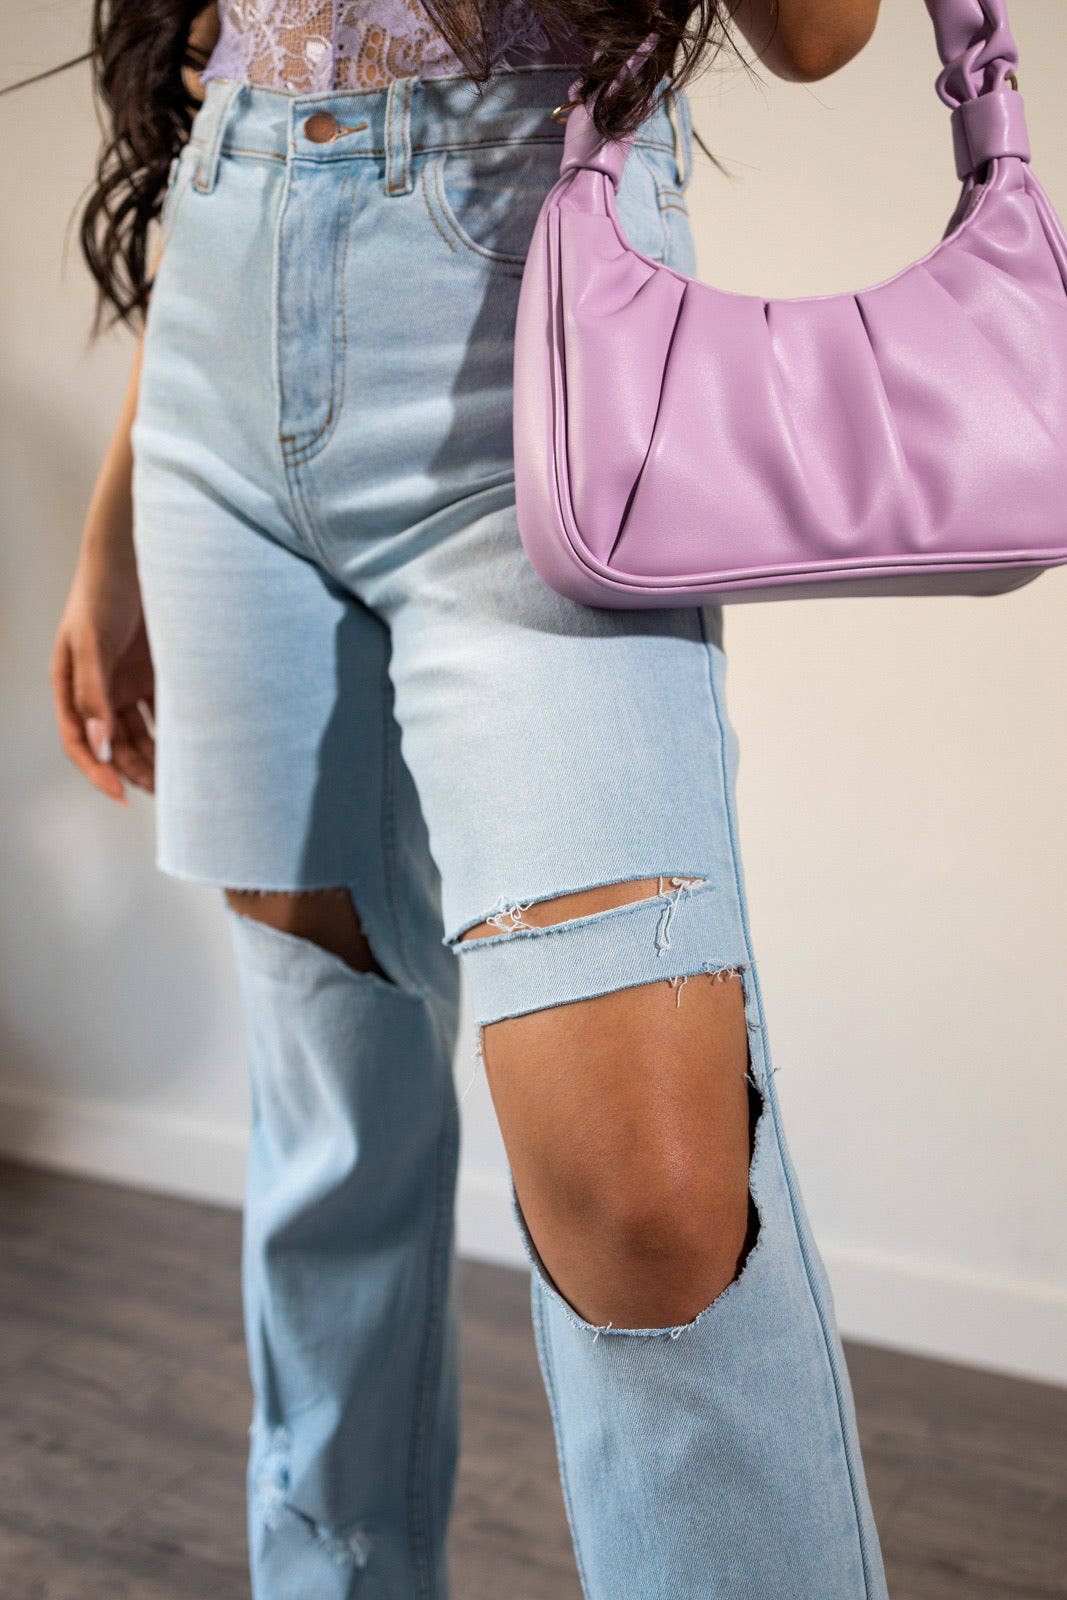 IN THIS IMAGE YOU WILL SEE A WOMAN STANDING UP MODELING A High rise wide leg jeans with distressed details on both front legs of jeans. IT IS  Stone washed . JEANS HAS  Light stretch. IT IS MADE UP OF  99% Cotton &  1% Spandex.   Model IS wearing A  size 5 .  Model'S height IS 5'6